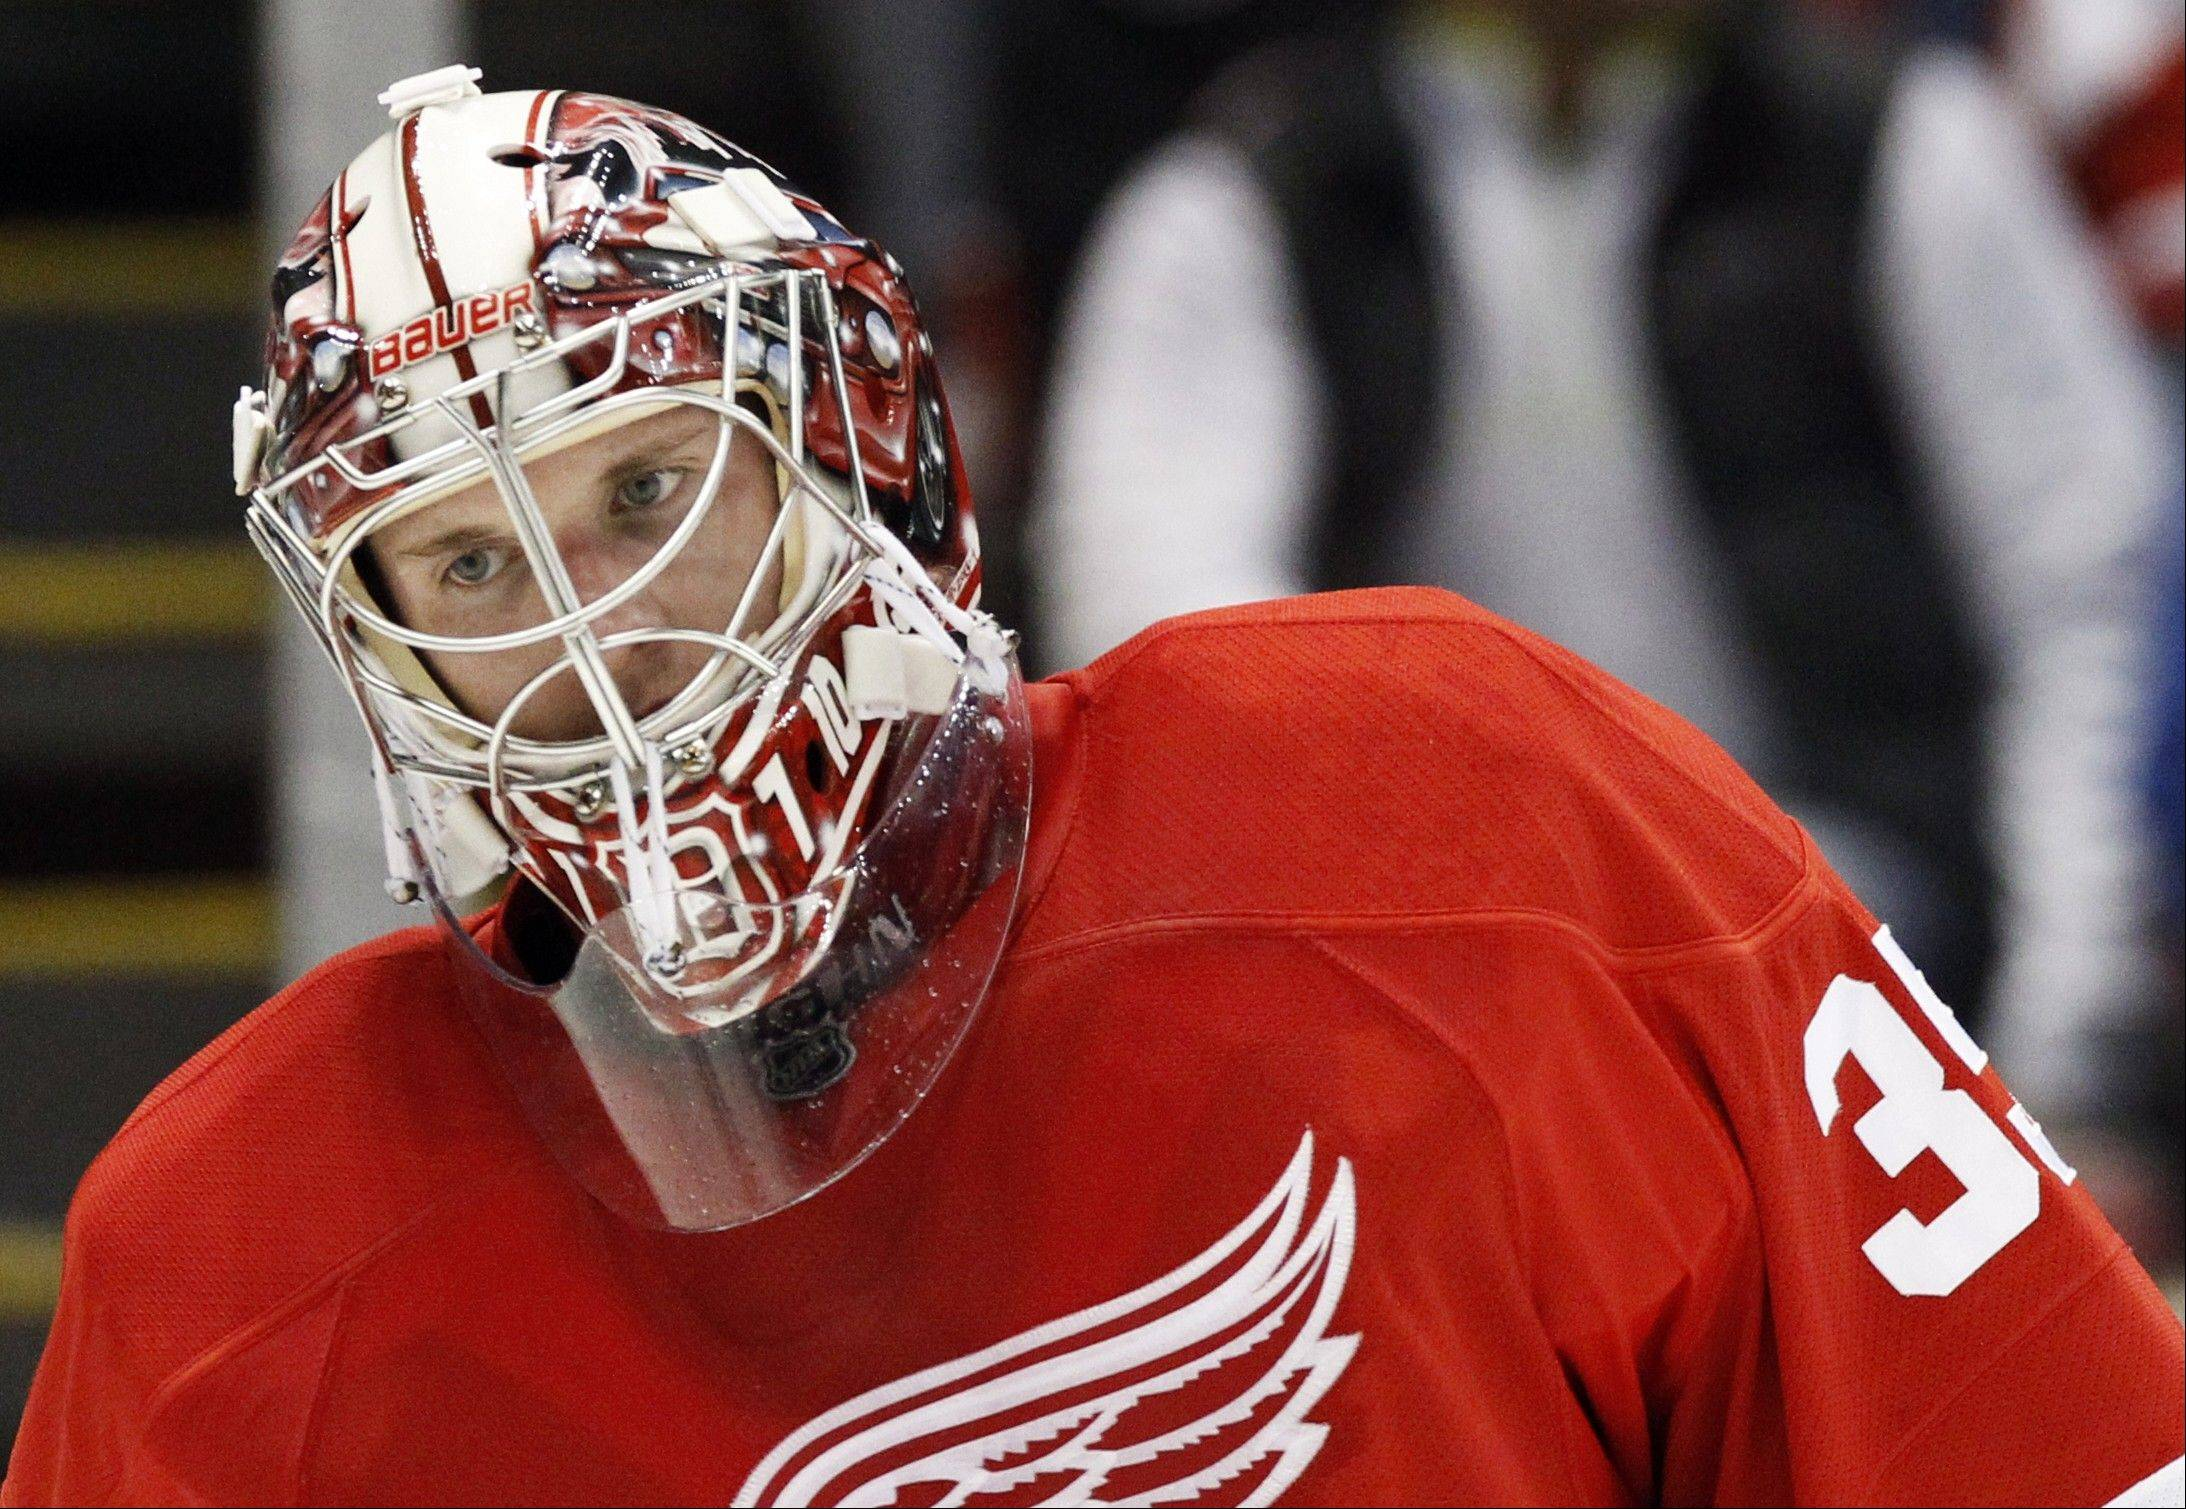 After losing Game 1, Detroit Red Wings goalie Jimmy Howard has managed to keep the high-scoring Blackhawks attack under wraps. Detroit has a 2-1 series lead heading into Game 4 Thursday night.